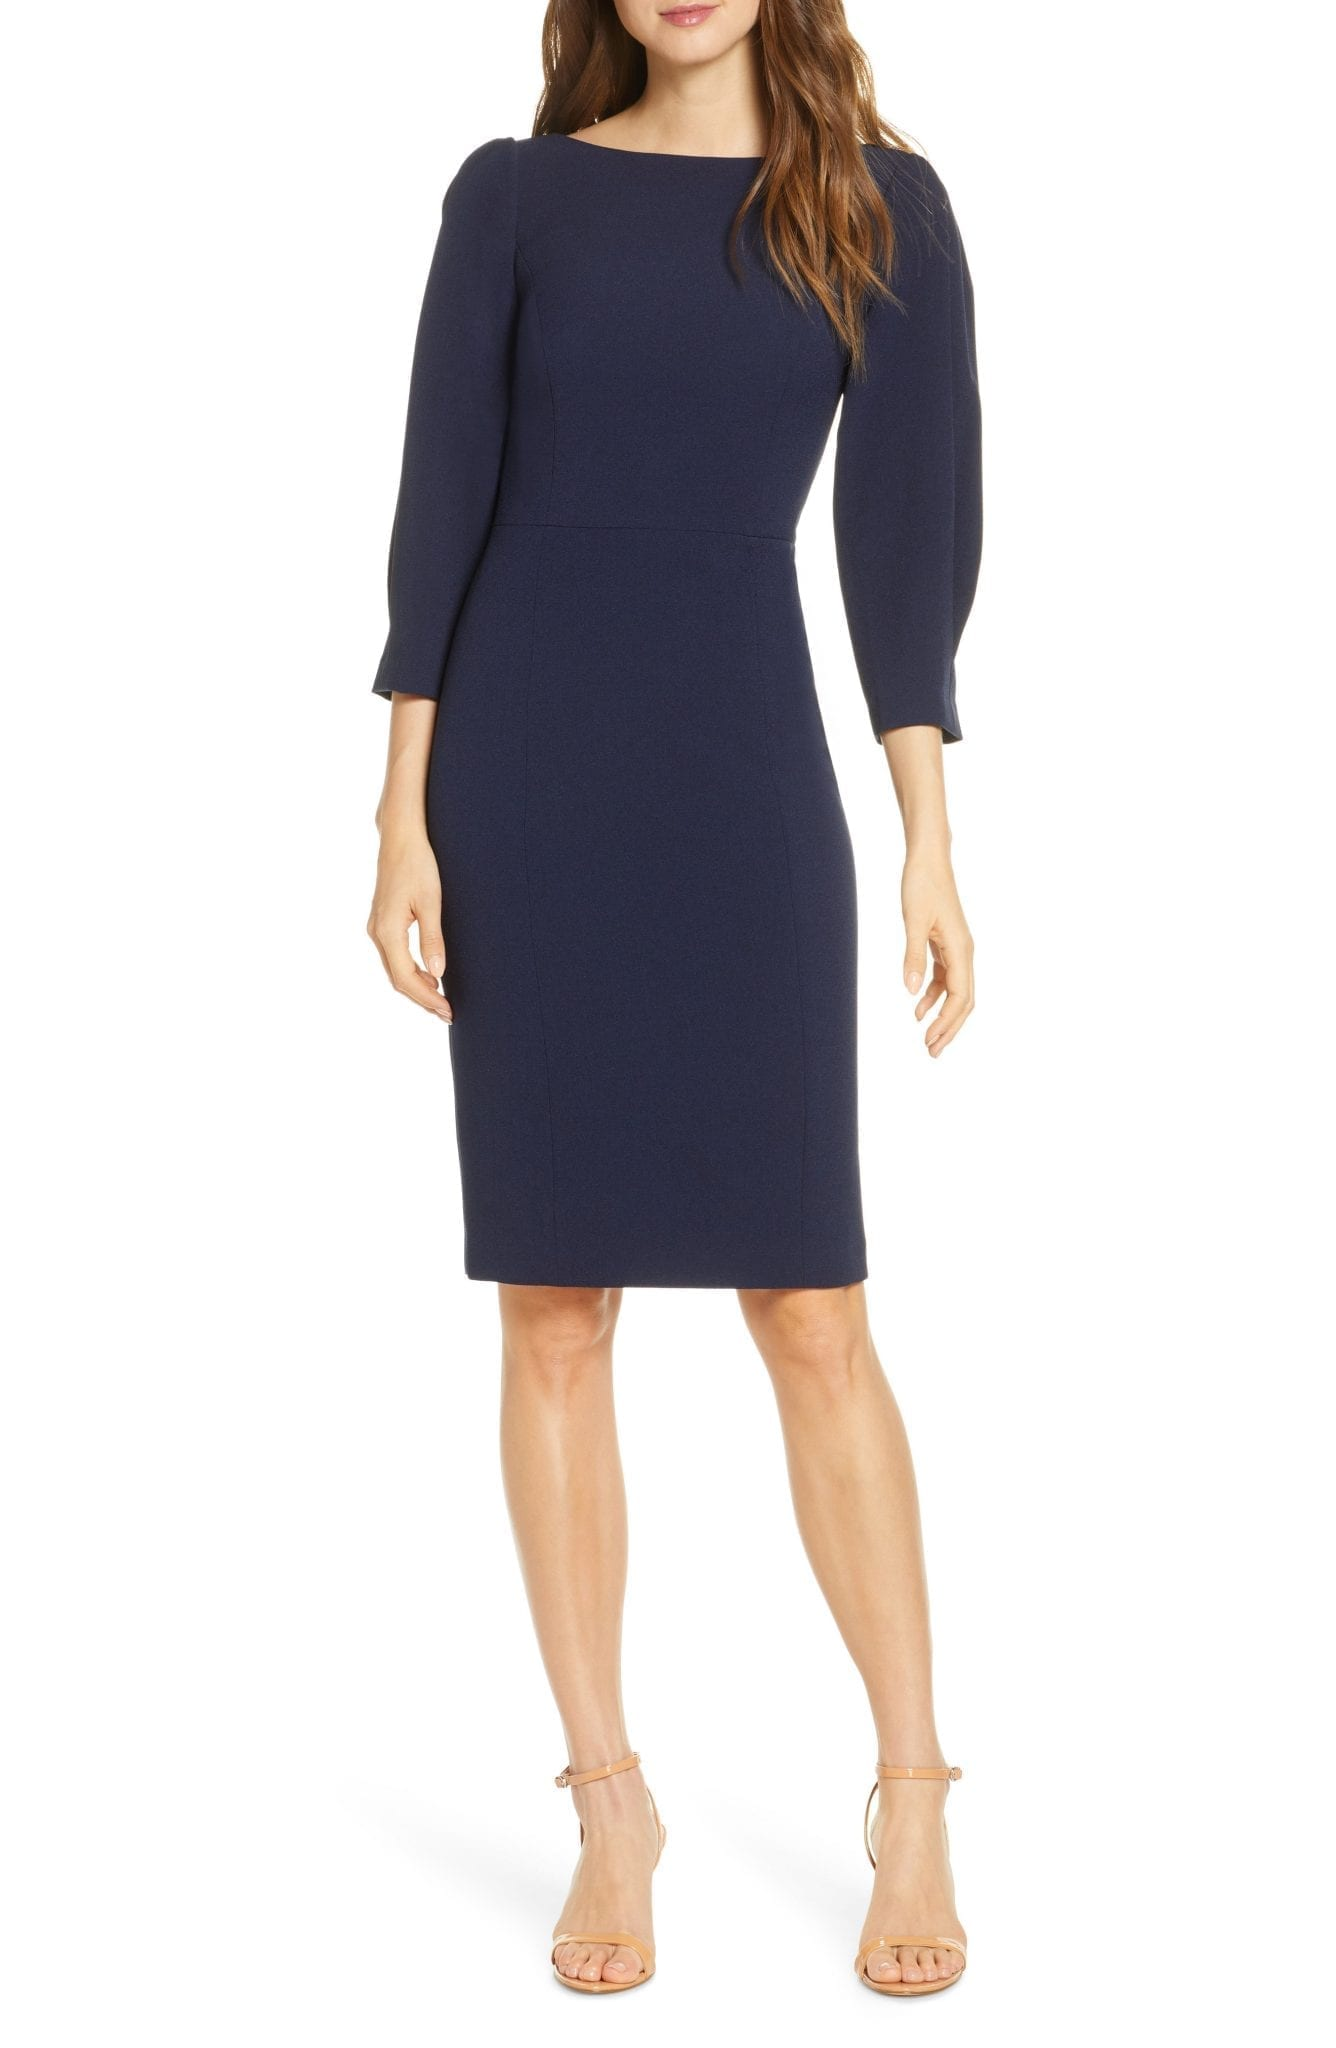 ELIZA J Pleated Sleeve Sheath Dress